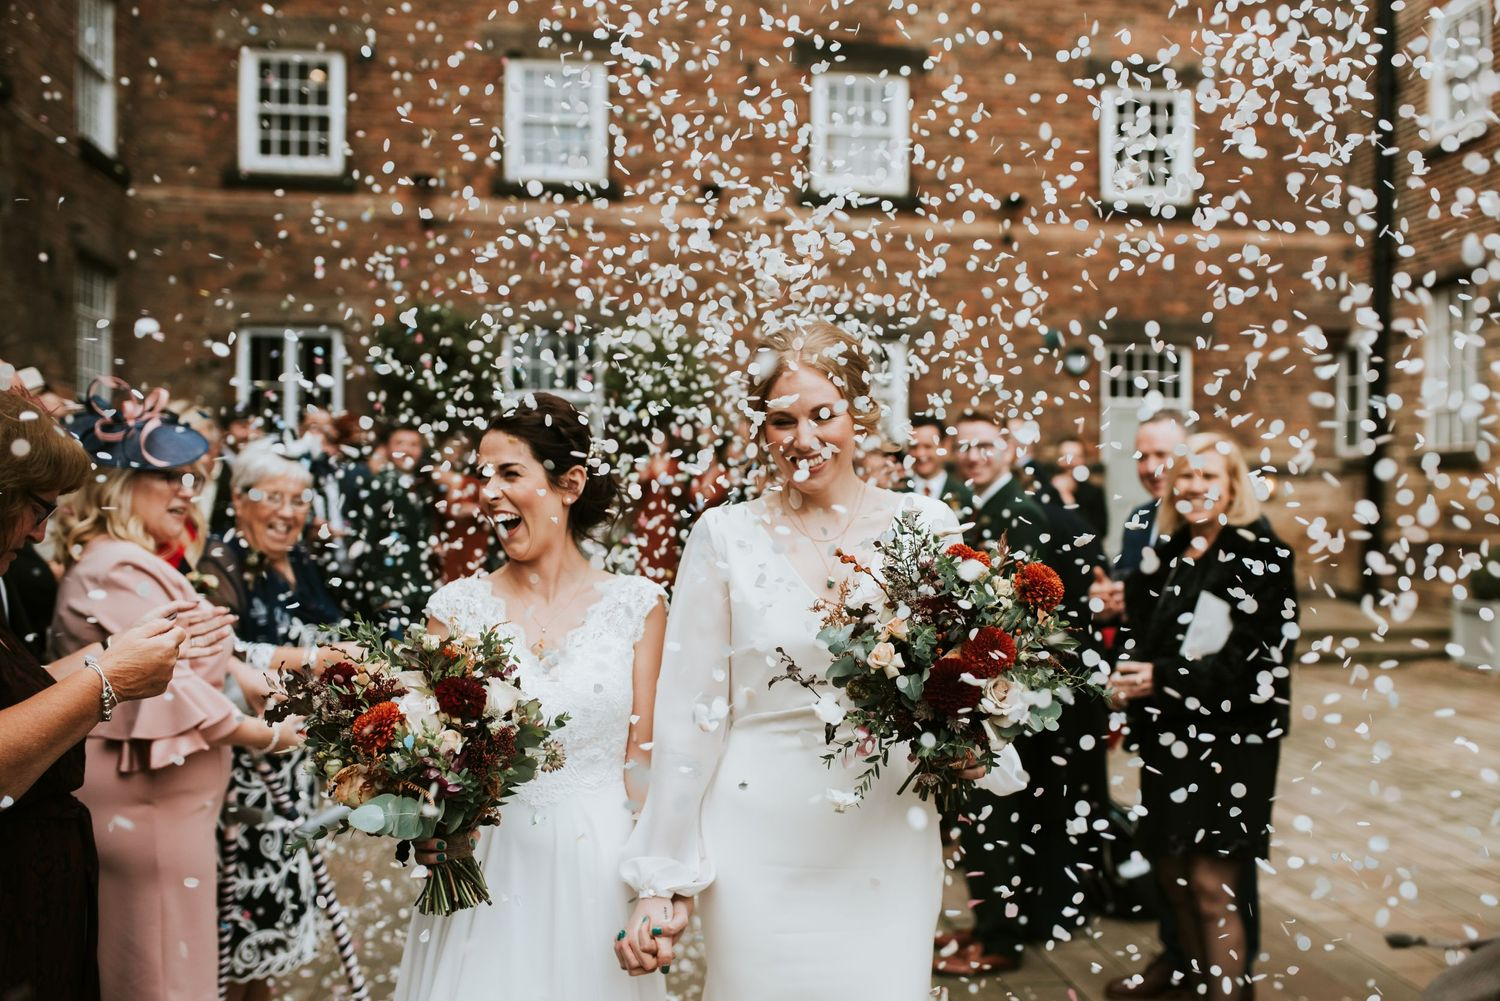 West Mill Wedding Photography - Rosie Kelly Photography